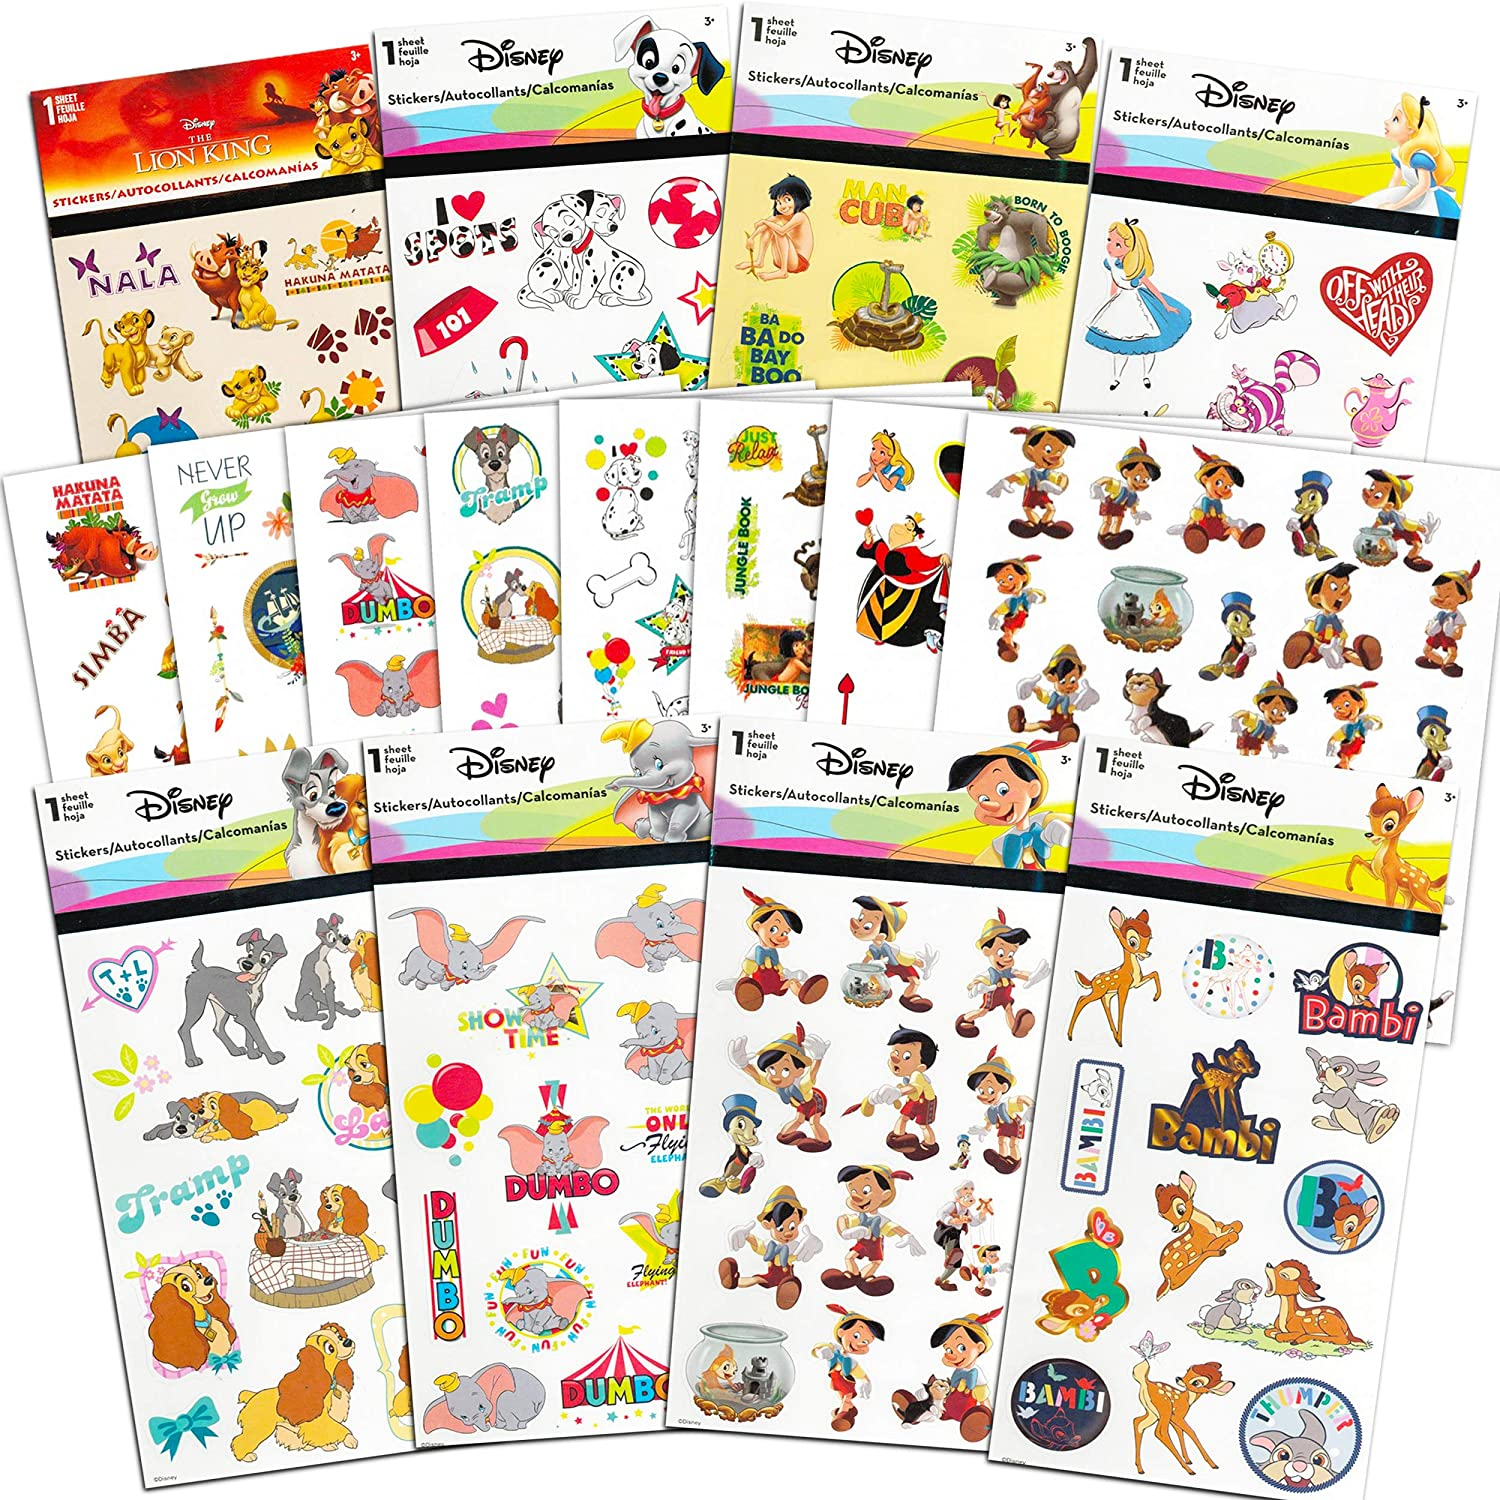 Classic Disney Stickers and Tattoos Party Favors Mega Assortment ~ Bundle Includes 32 Disney Sheets Featuring Bambi, Lion King, Jungle Book, Pinocchio, and More (Over 200 Stickers! Over 200 Tattoos!)